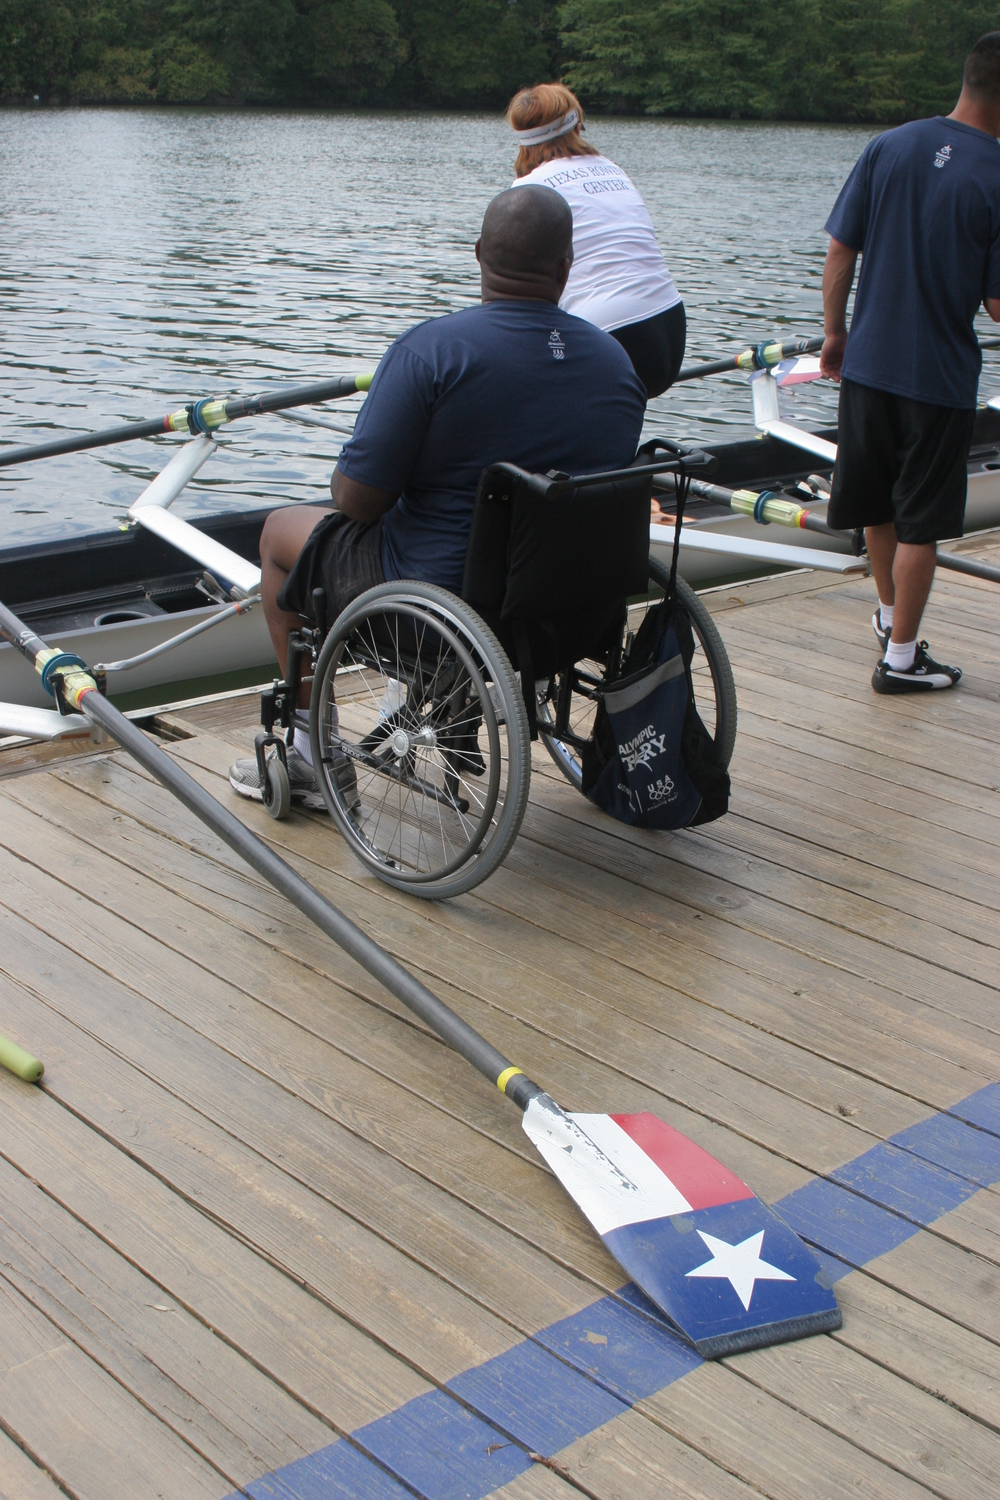 Another Vet ready to get out of the chair & into the boat to row. ~photo: V. Scheer